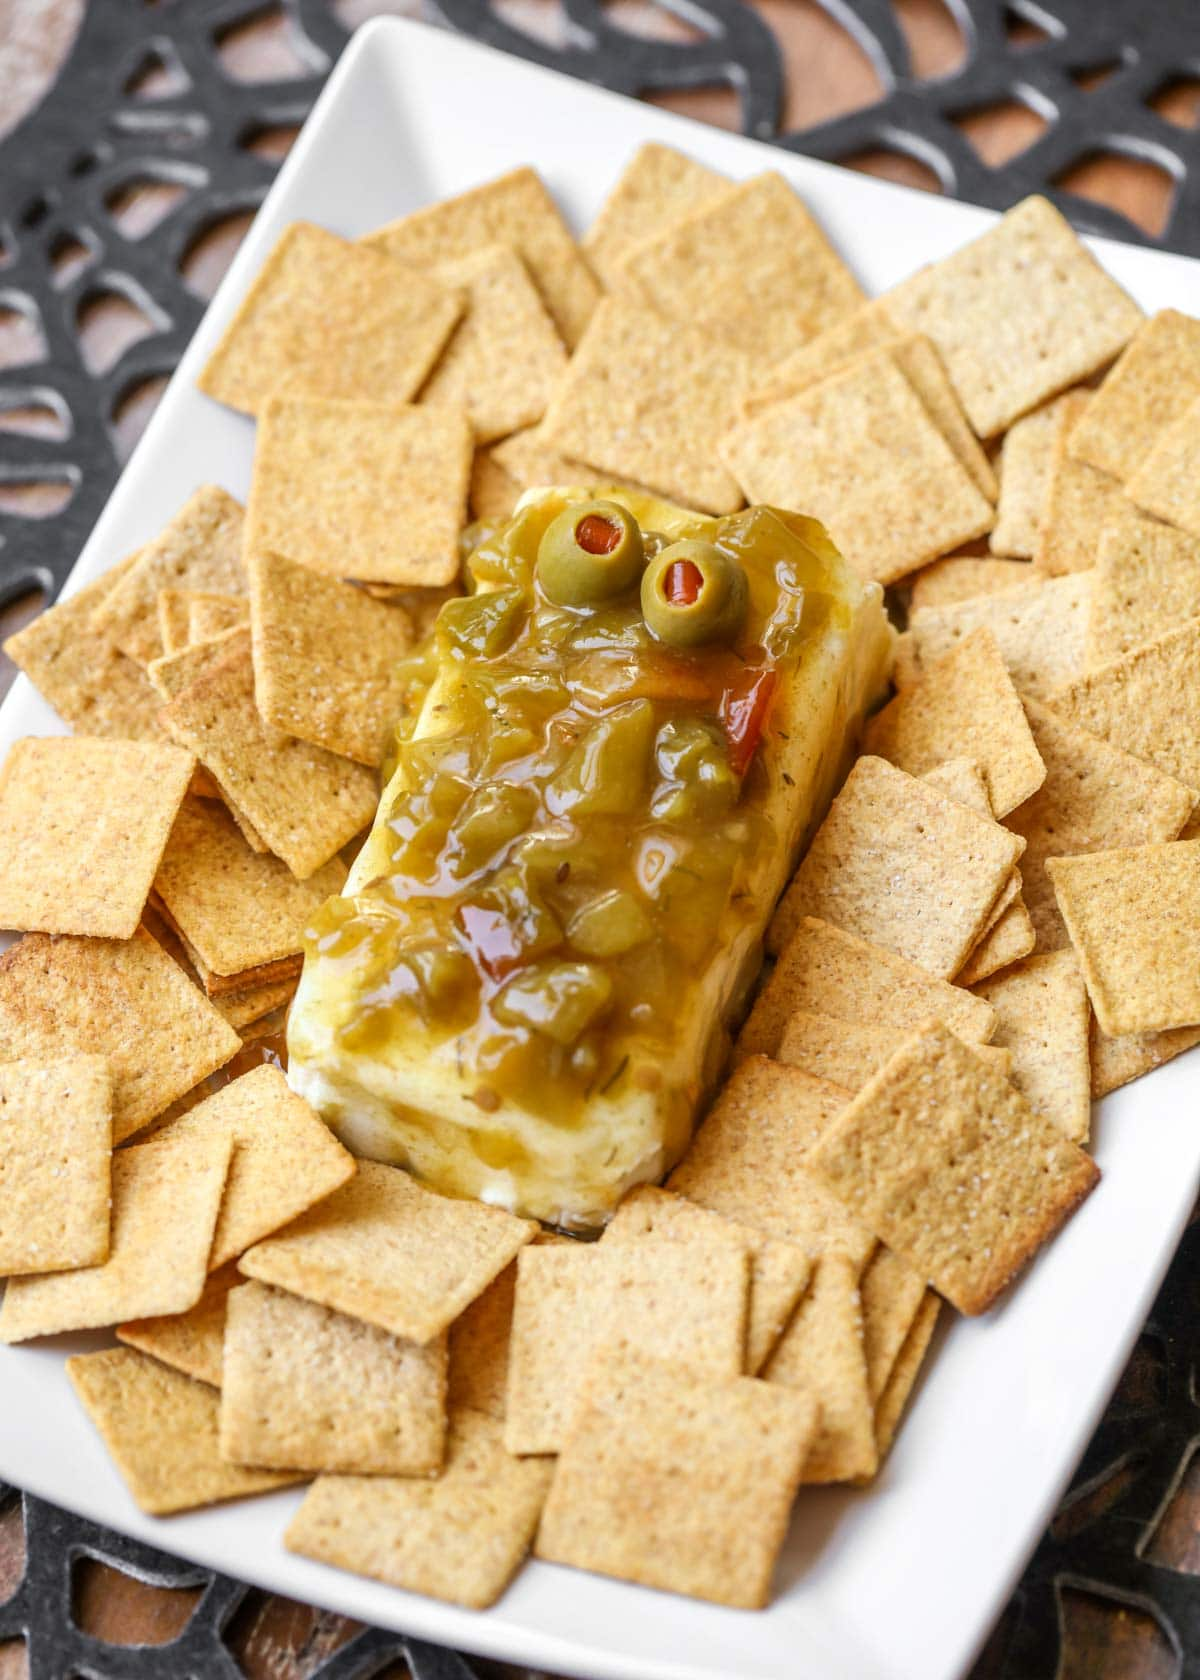 Green chili cream cheese dip with green olives for eyes